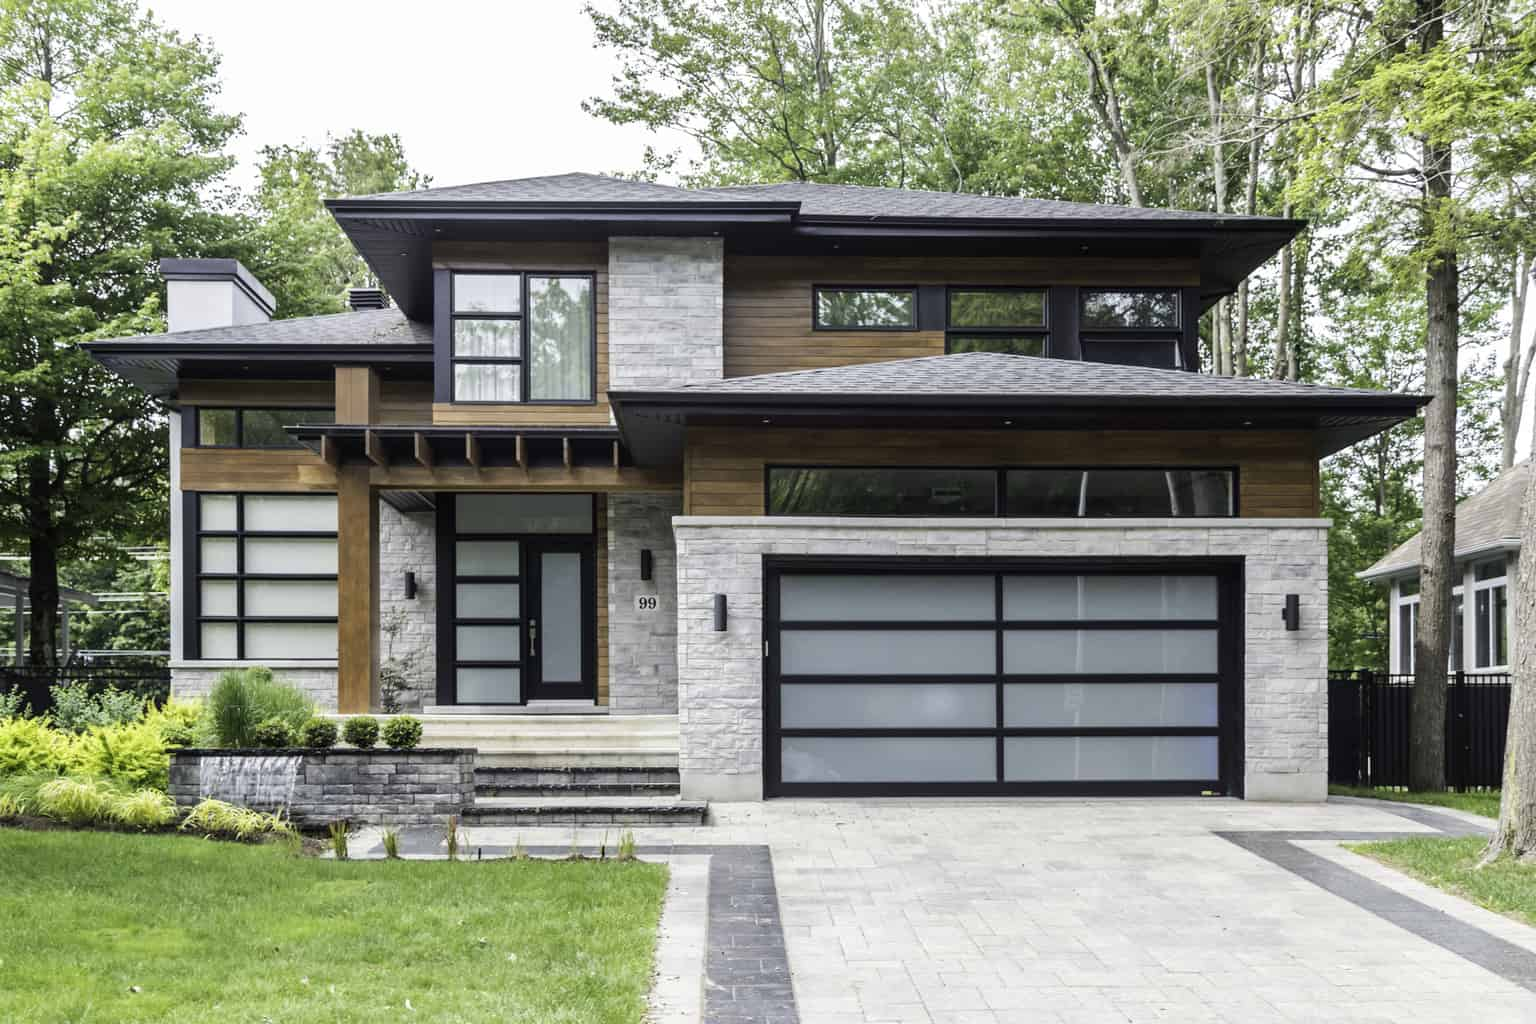 How You Can Get a Major Garage Door Return on Investment